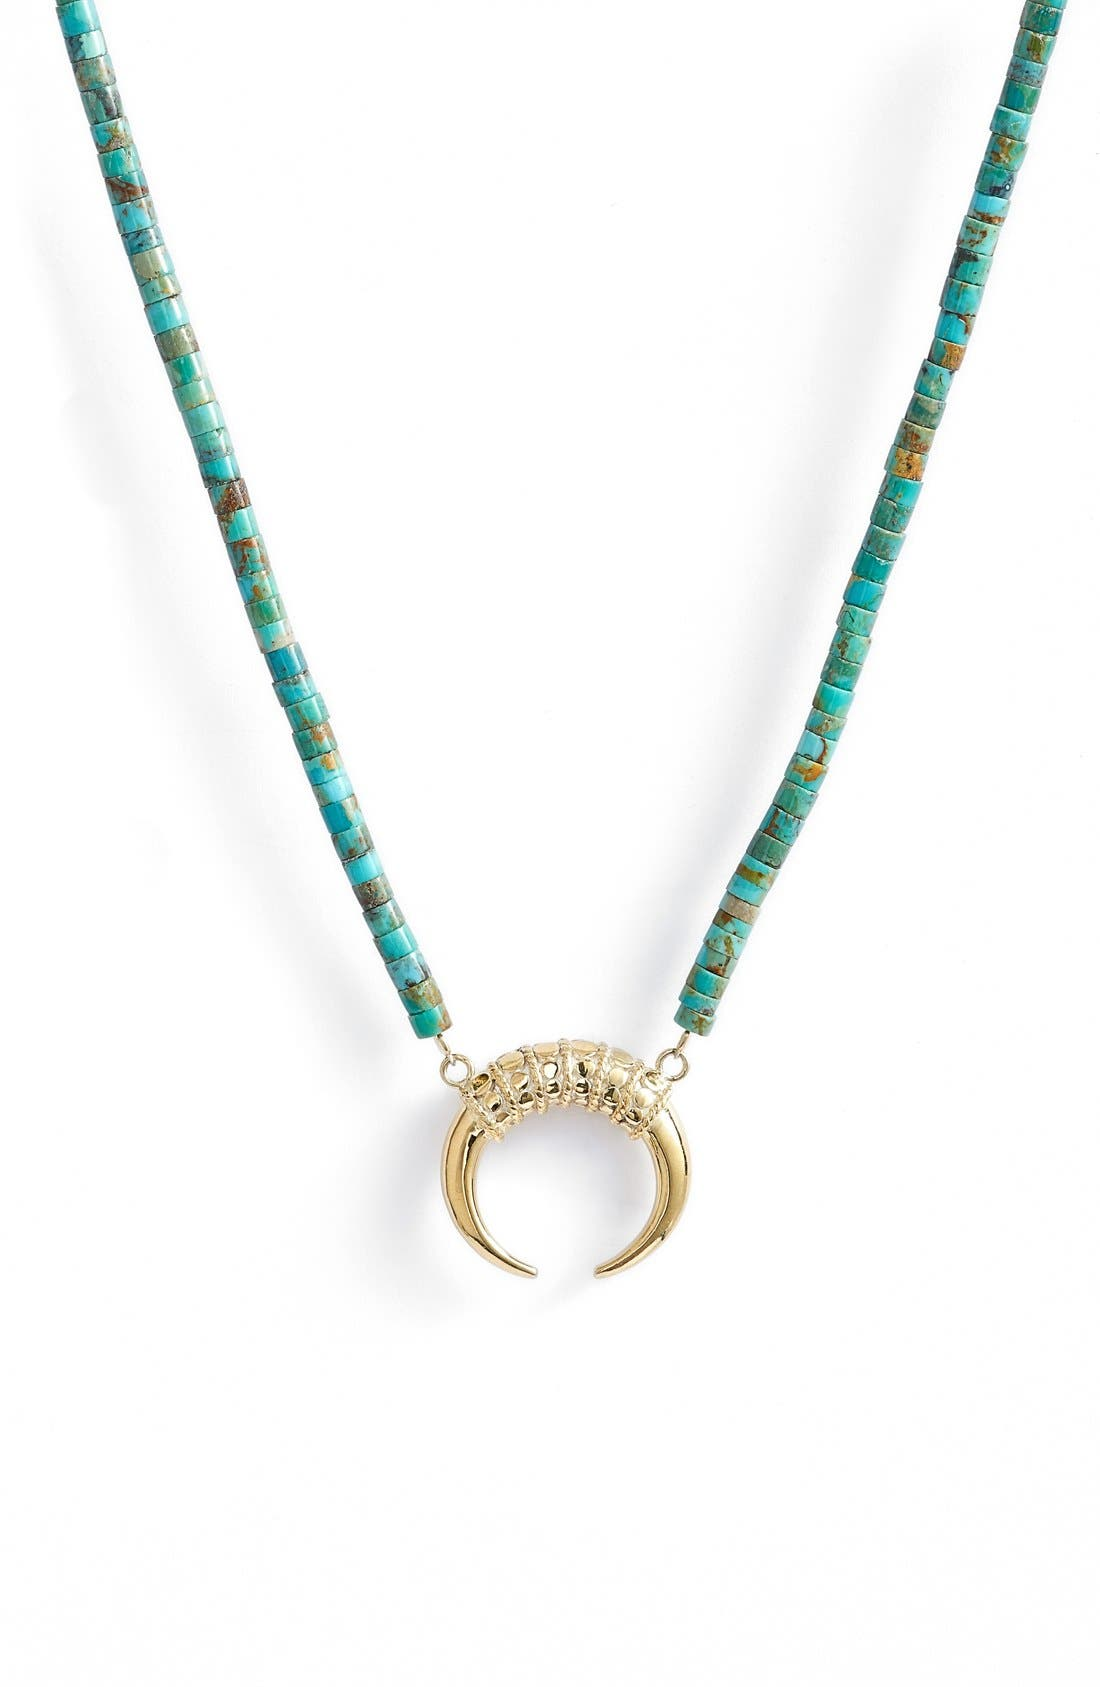 Main Image - Anna Beck Horn Pendant Necklace